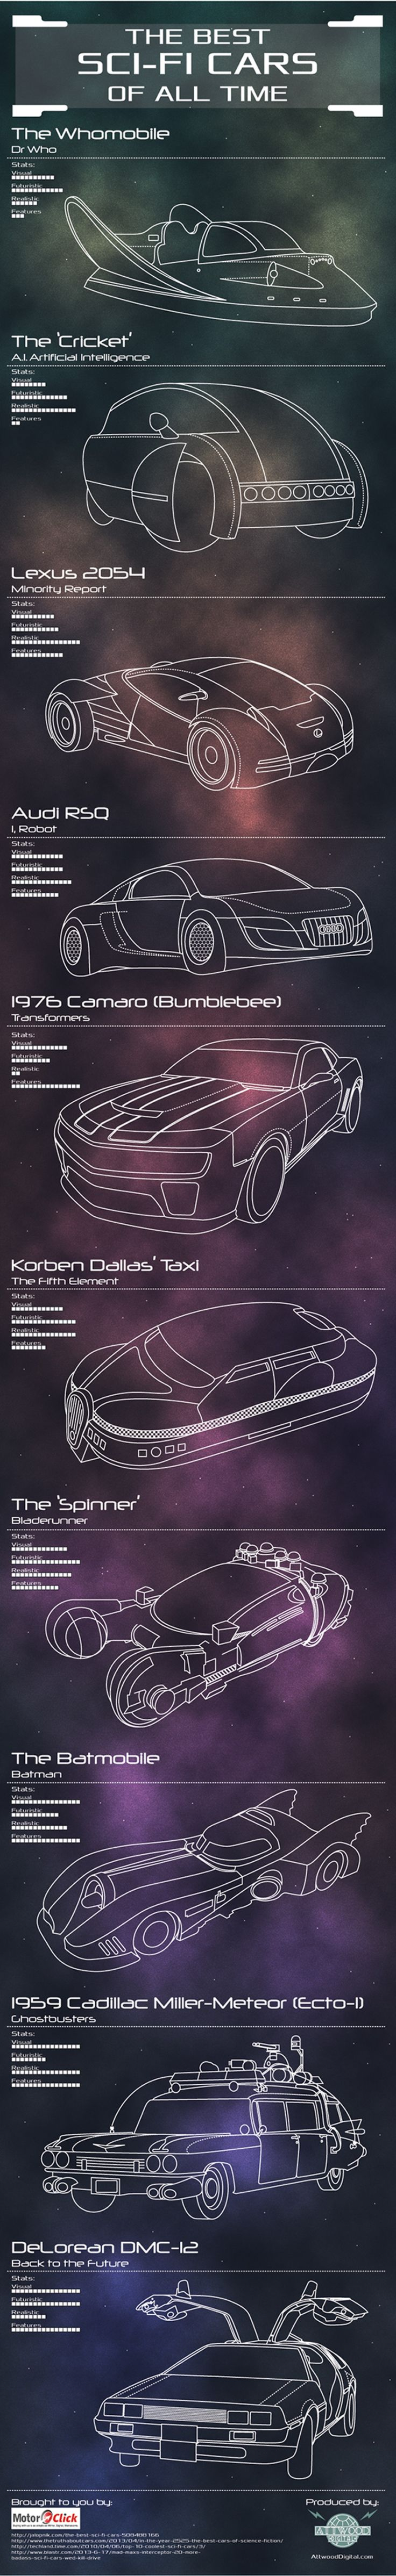 The Best Sci-Fi Cars Of All Time #Infographic